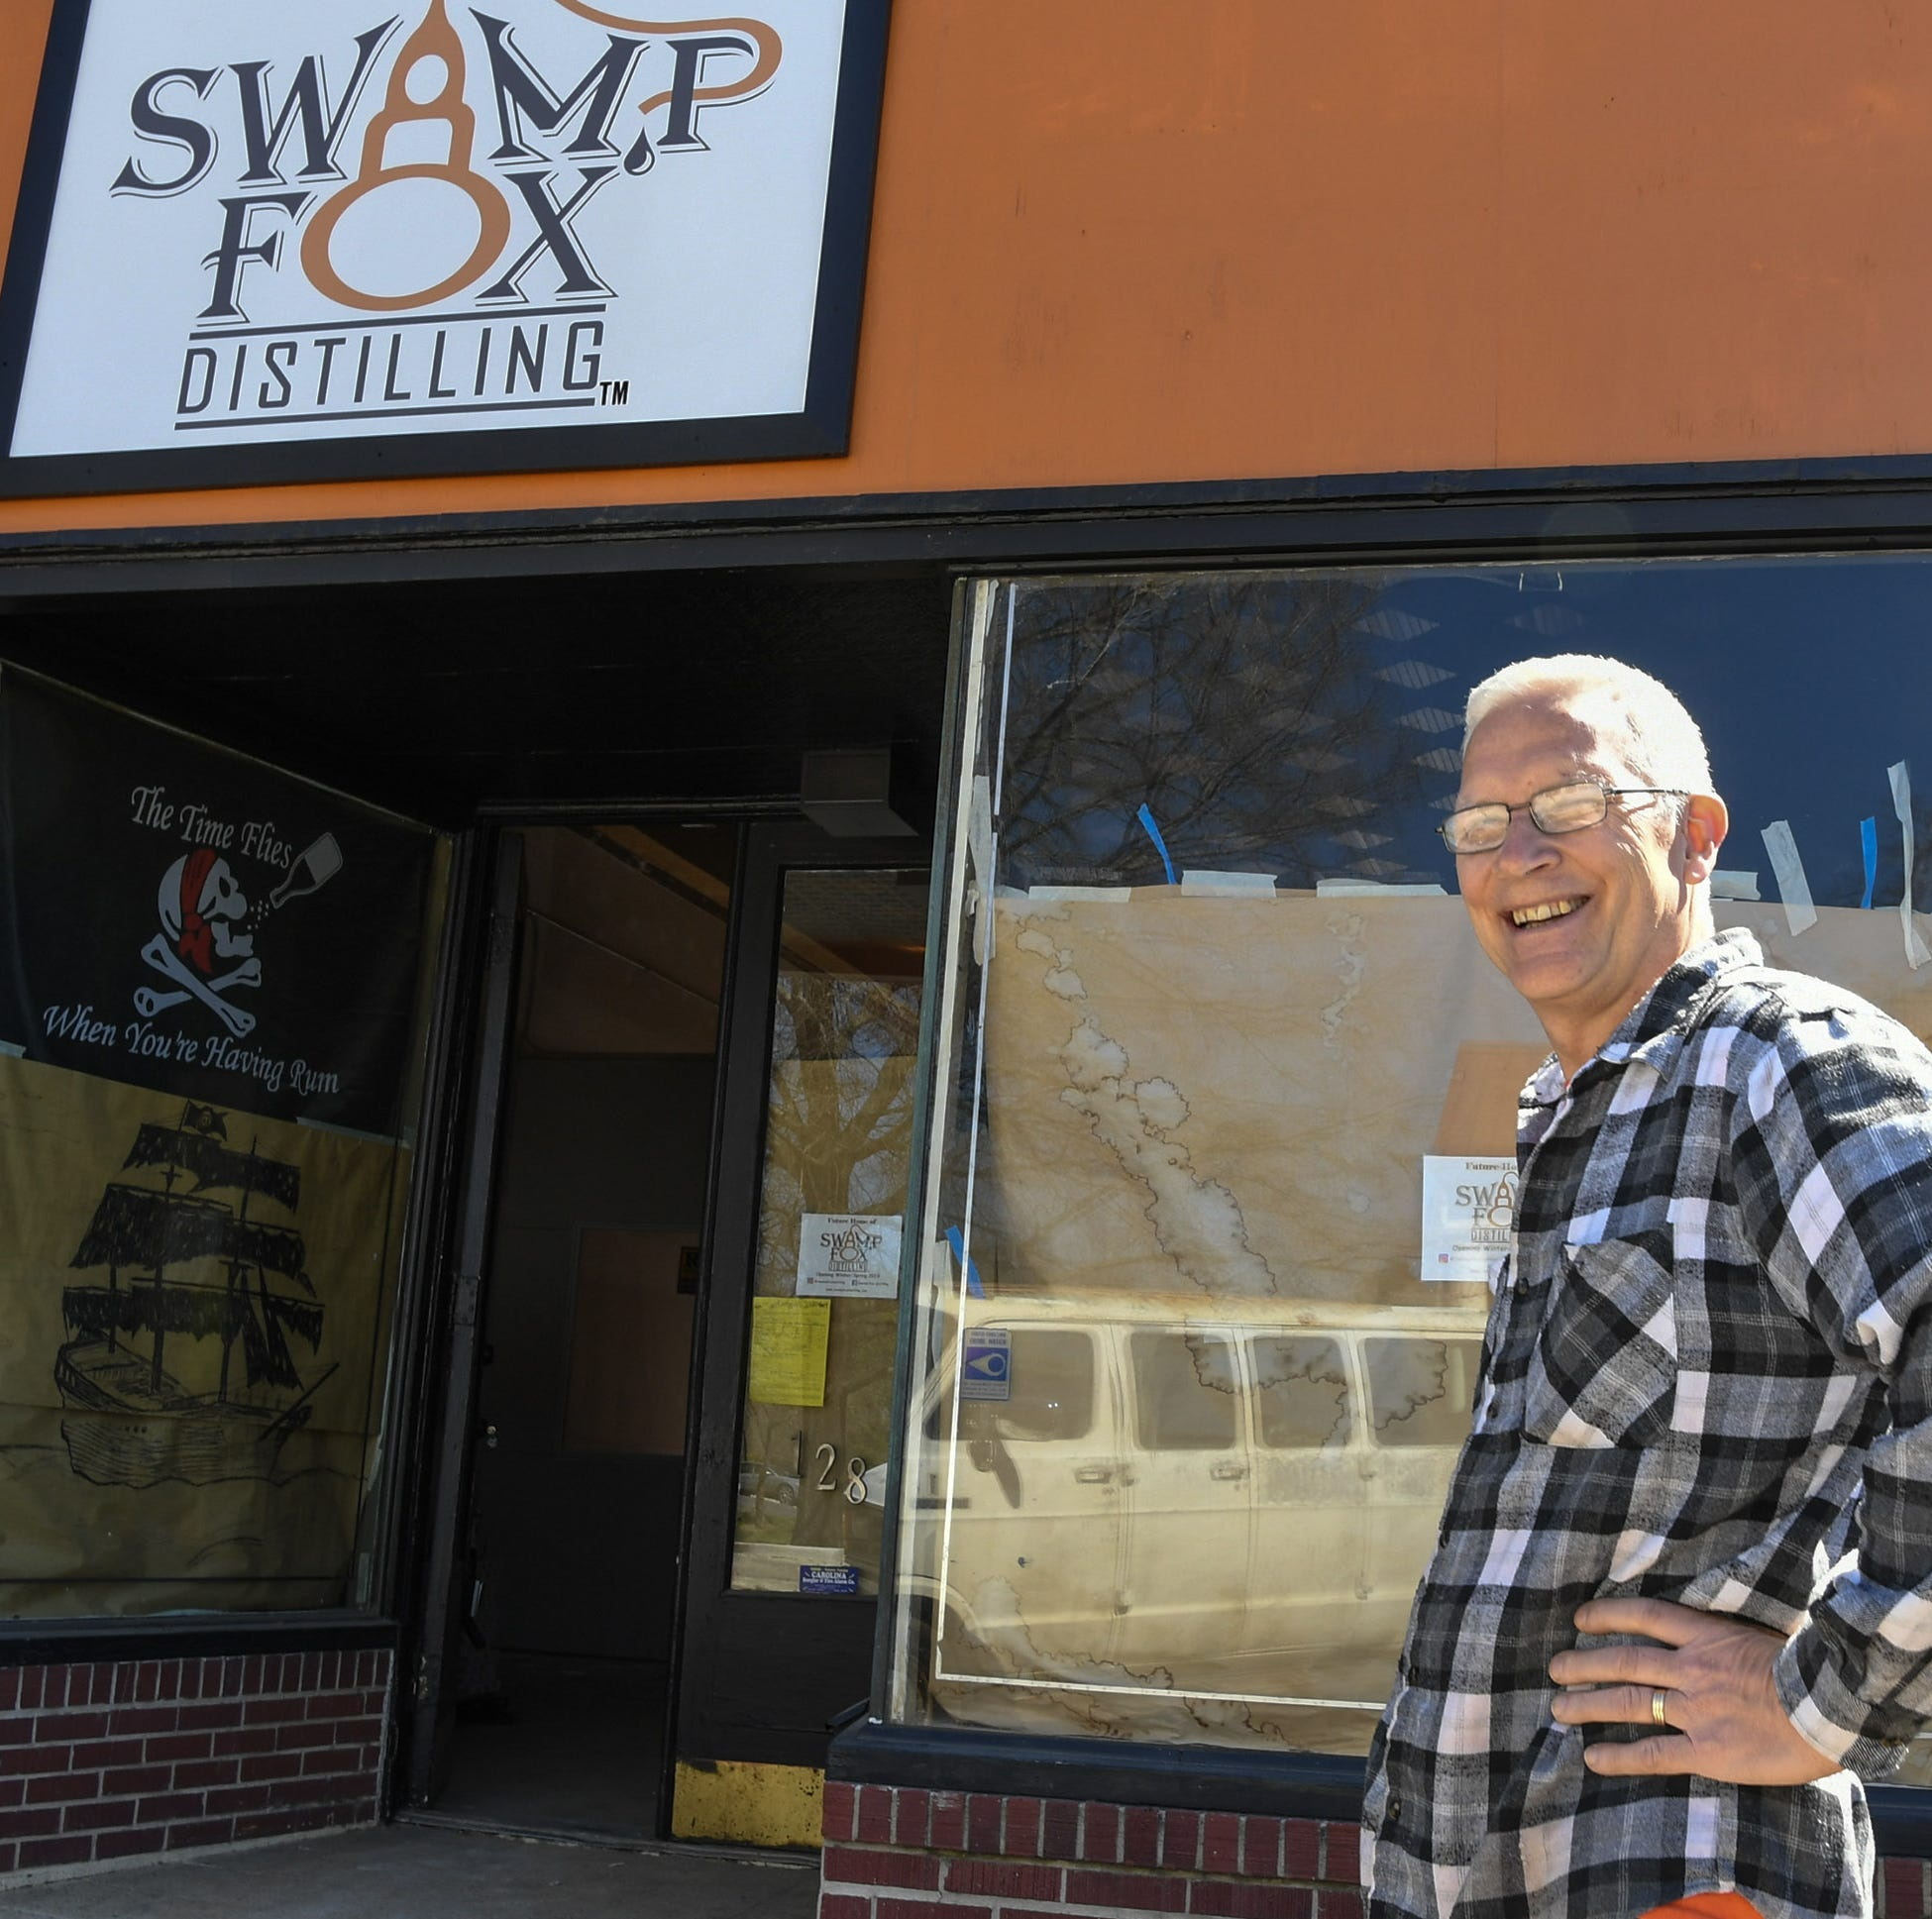 Swamp Fox Distilling, a rum distillery, hopes to be open by June in Pendleton